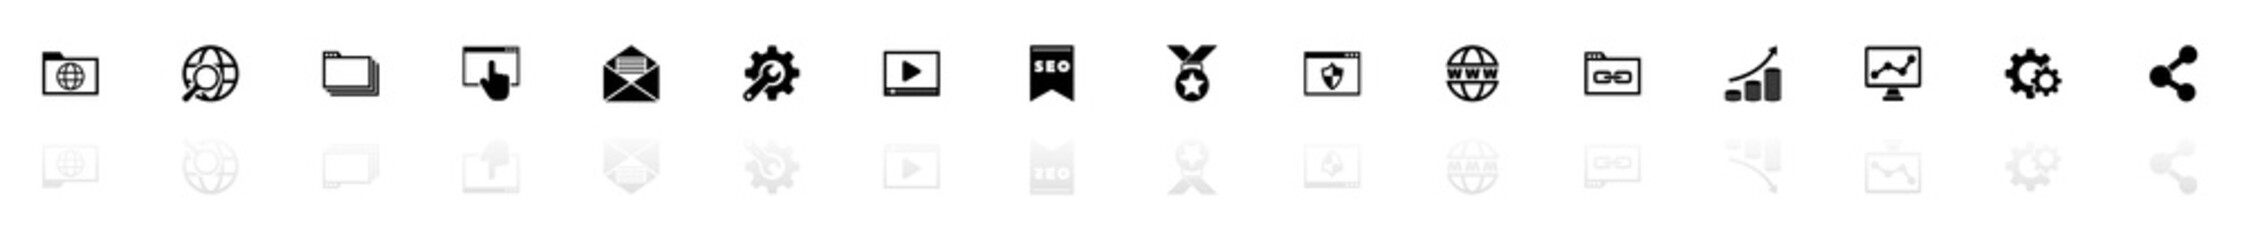 Seo icons - Black horizontal Illustration symbol on White Background with a mirror Shadow reflection. Flat Vector Icon.